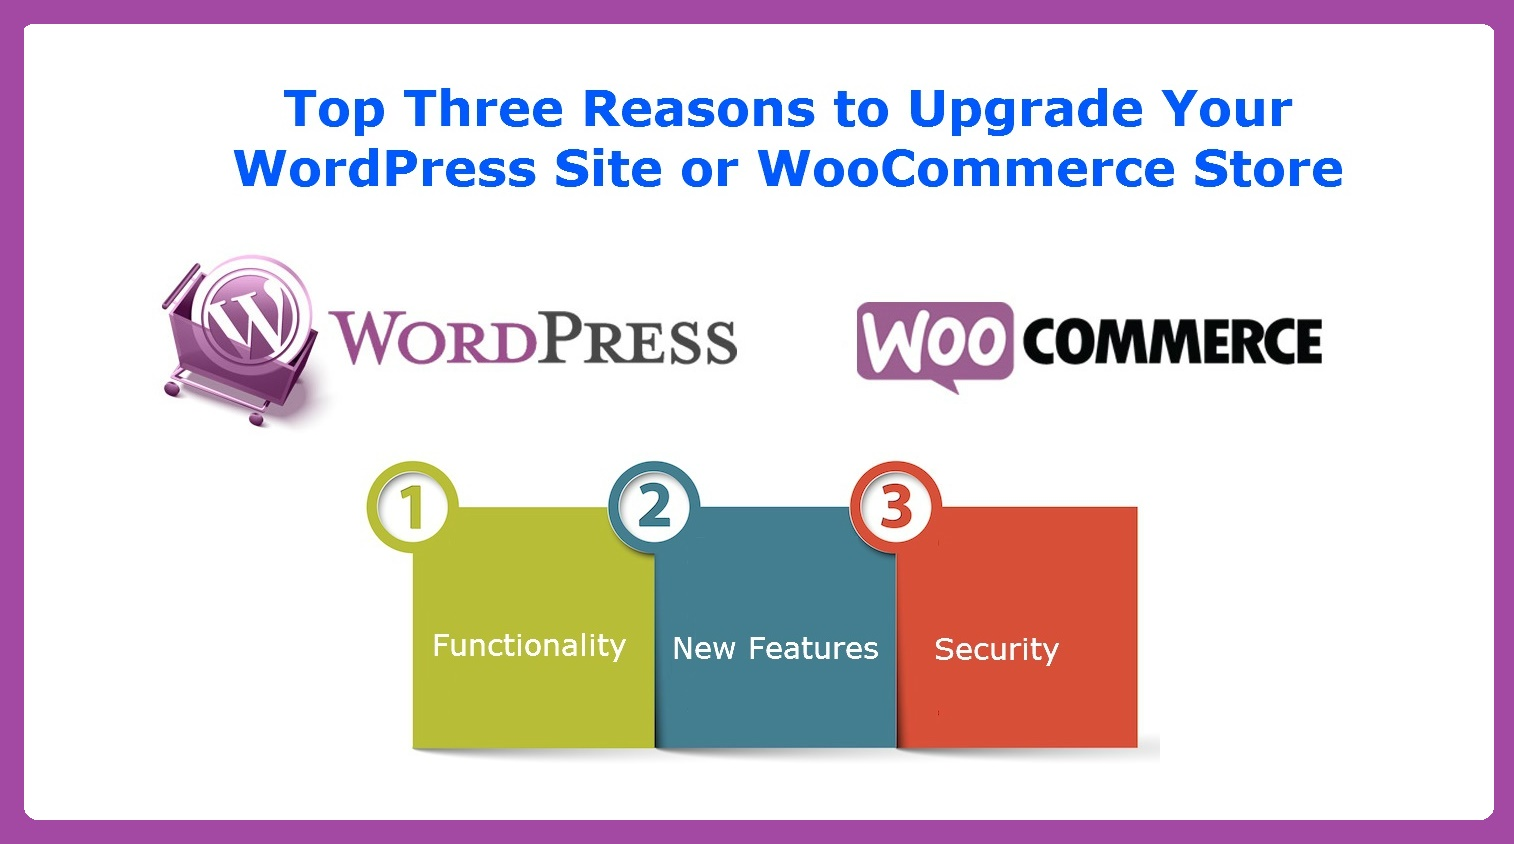 Top Three Reasons to Upgrade Your WordPress Site or WooCommerce Store